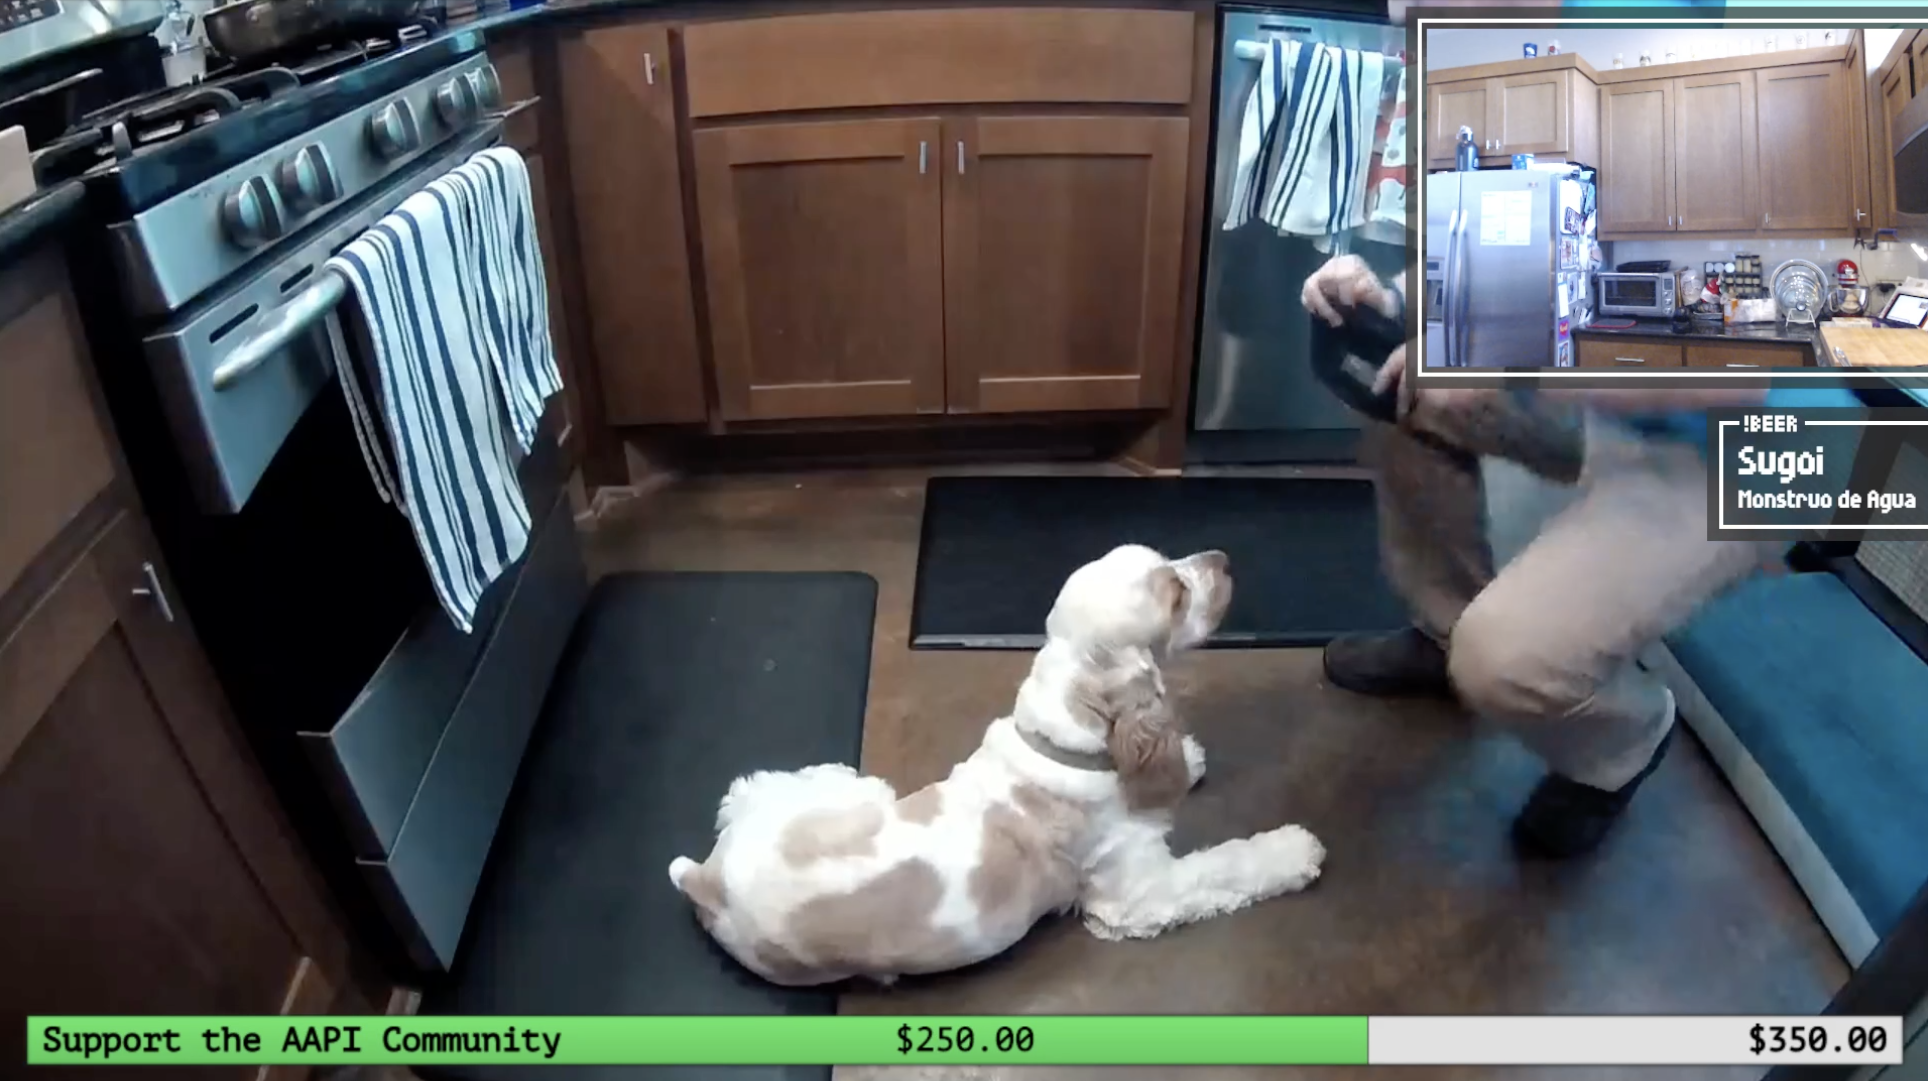 Can't forget the dog cam!